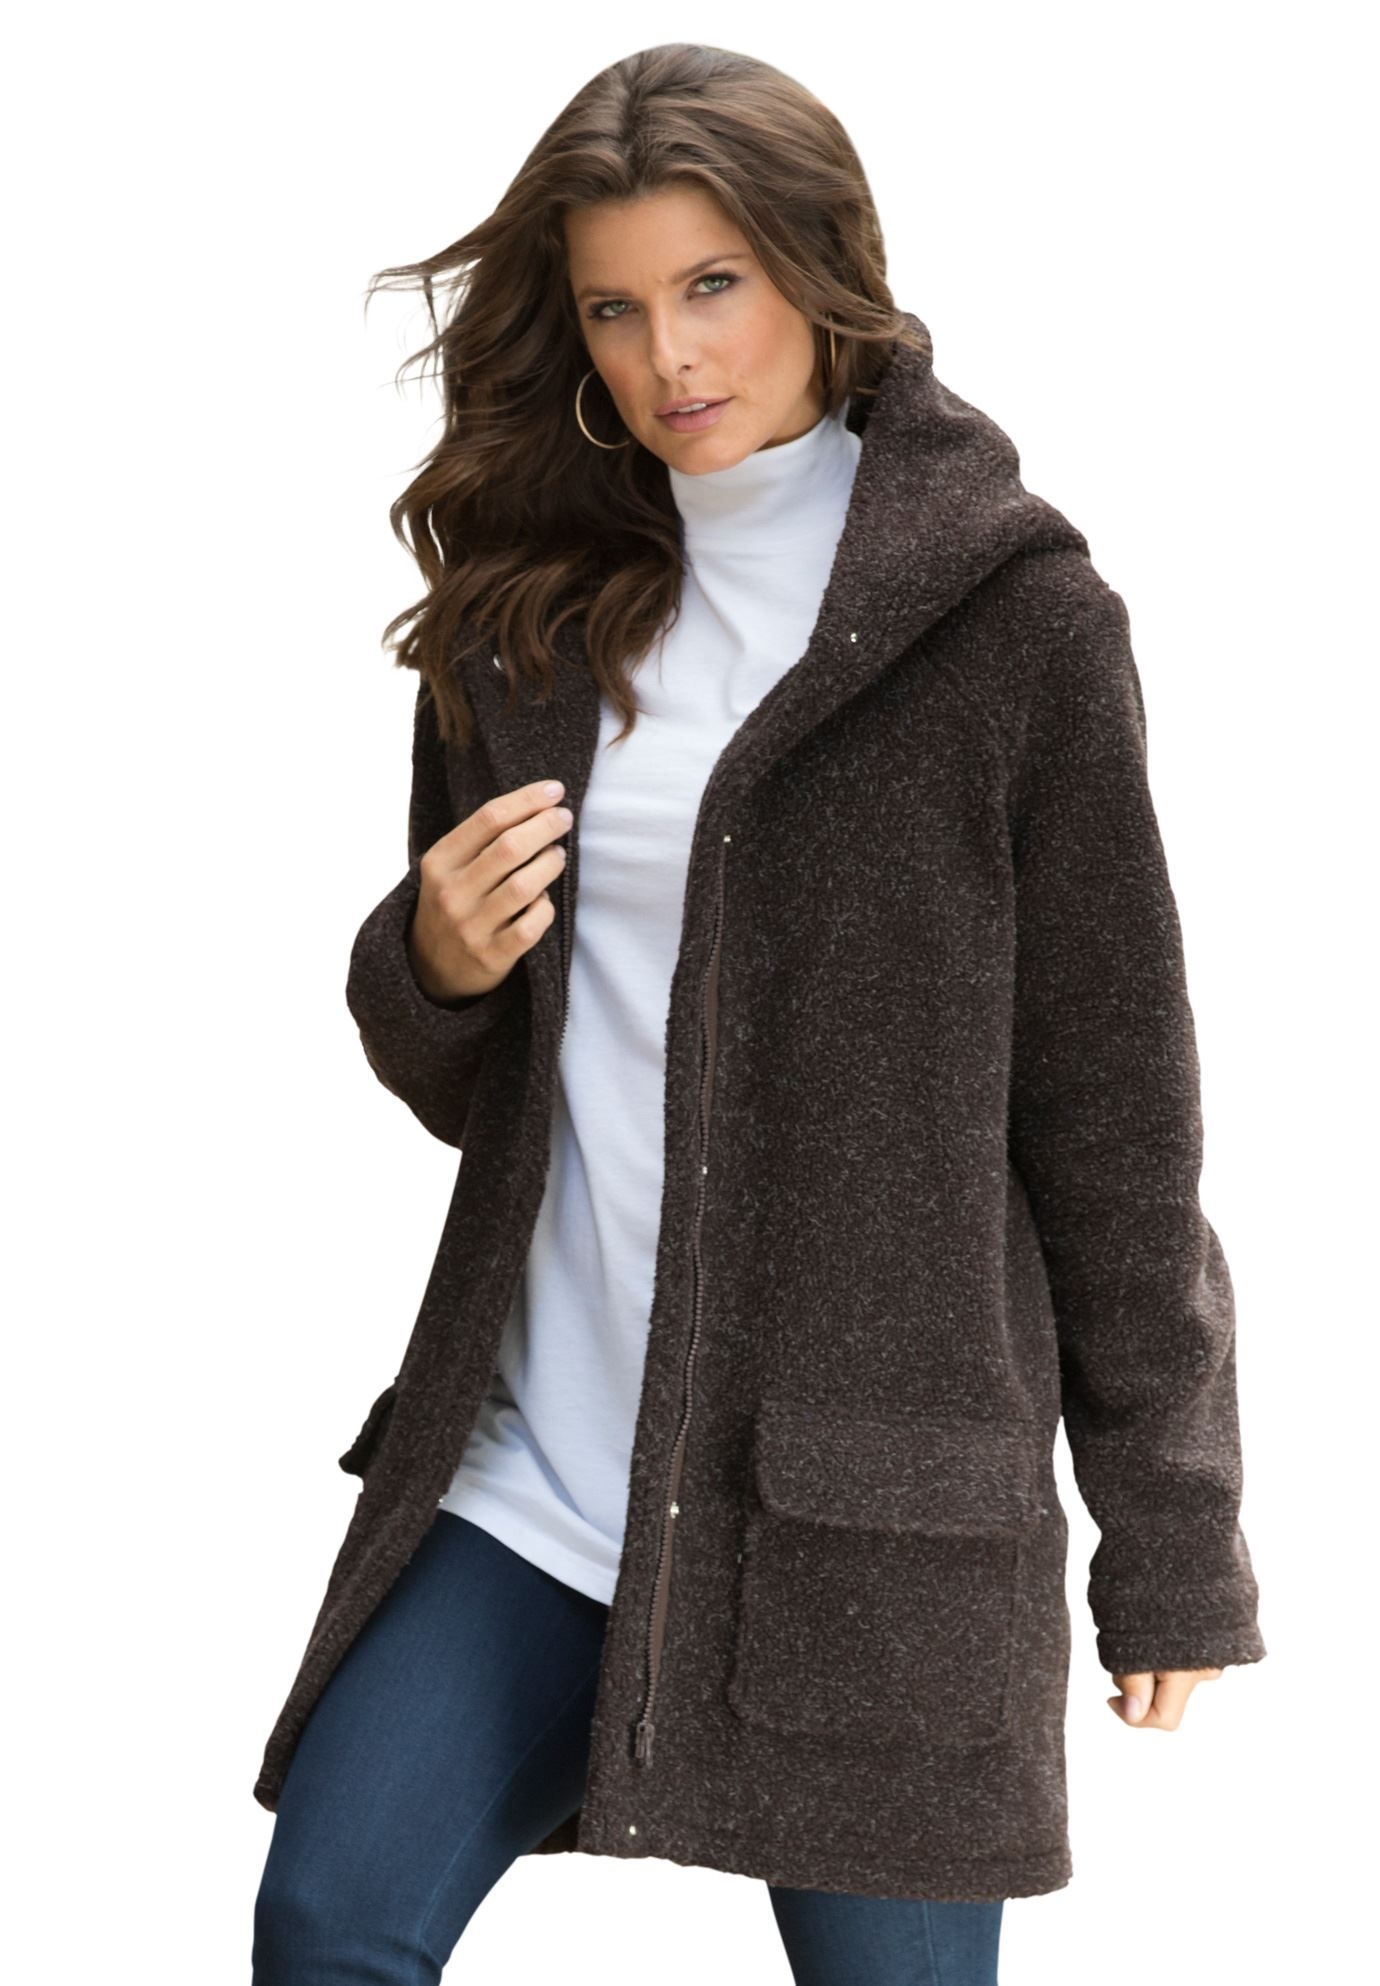 bec7a45e6b This plus size coat will become the most valuable player in your  fall winter closet. relaxed silhouette easily glides over your curves about  34